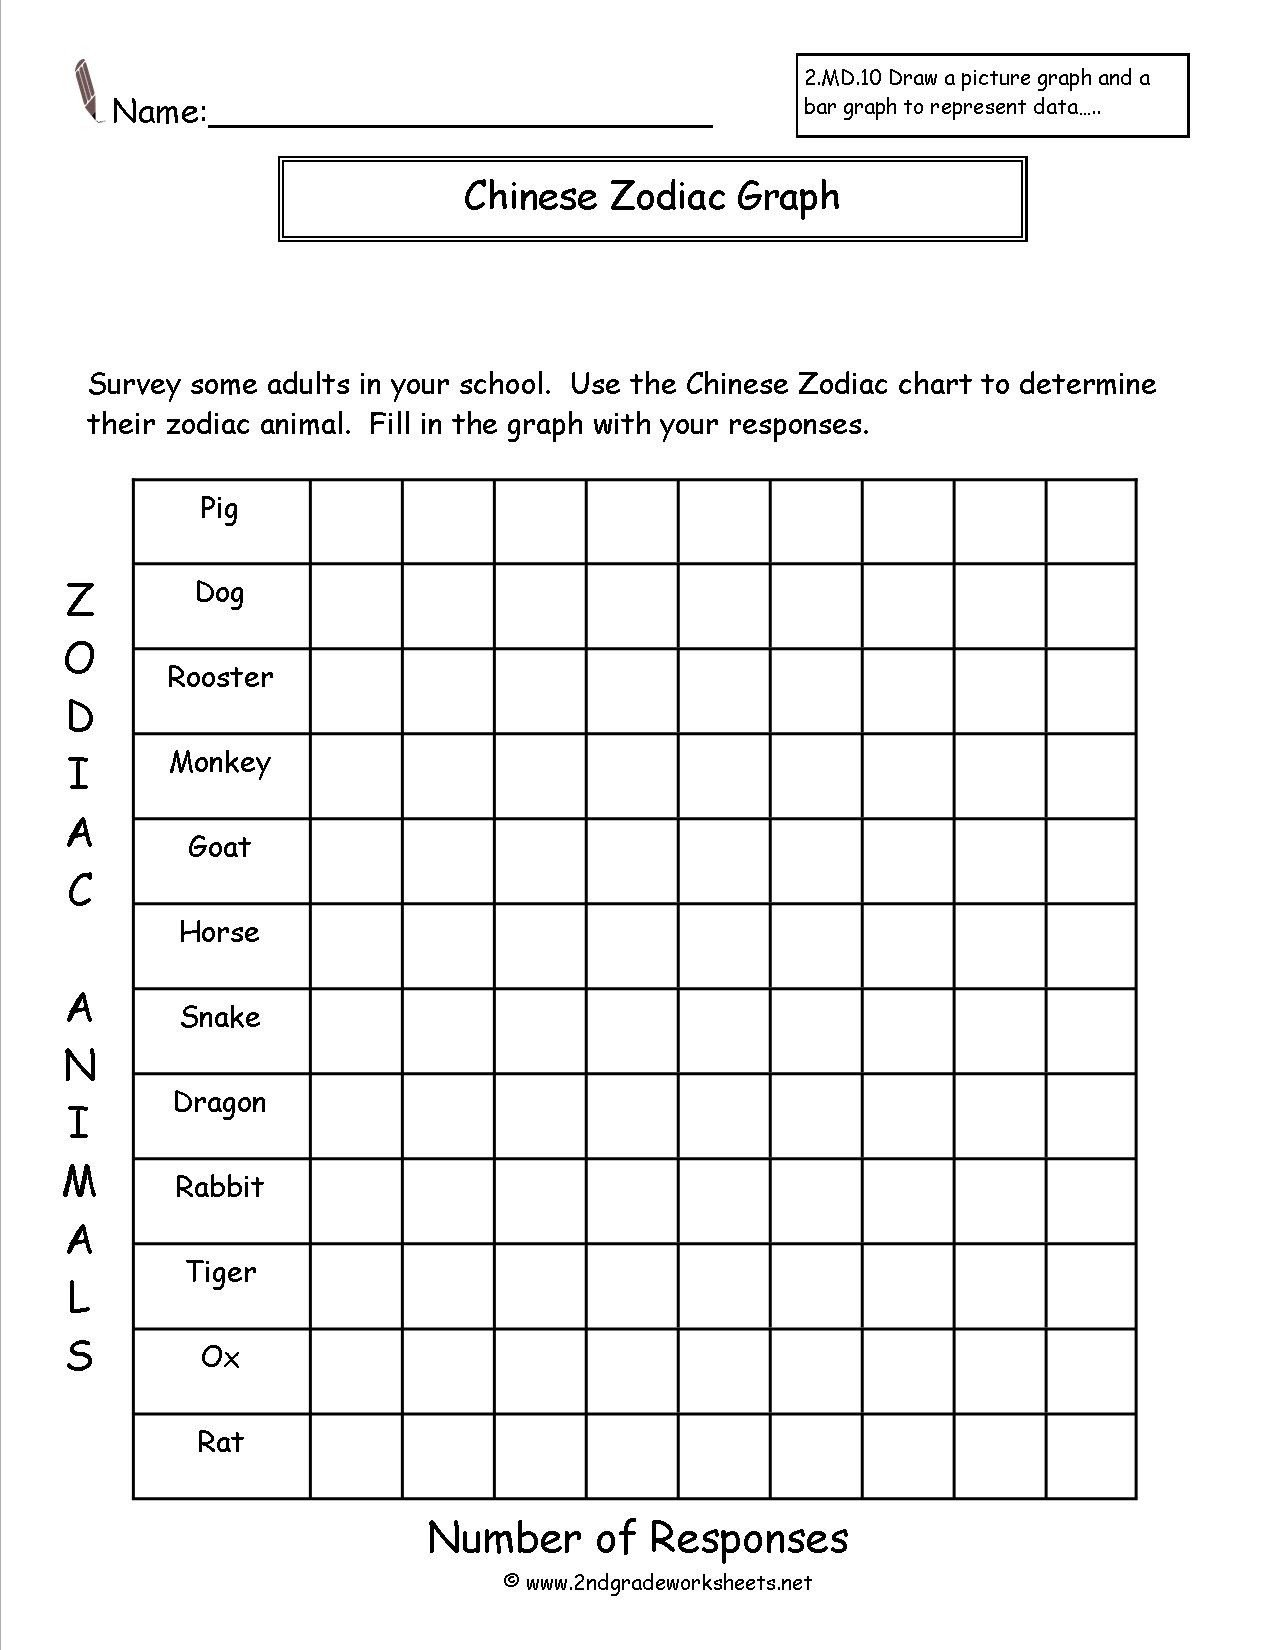 Reading Charts and Graphs Worksheet Creating Graphs Worksheets